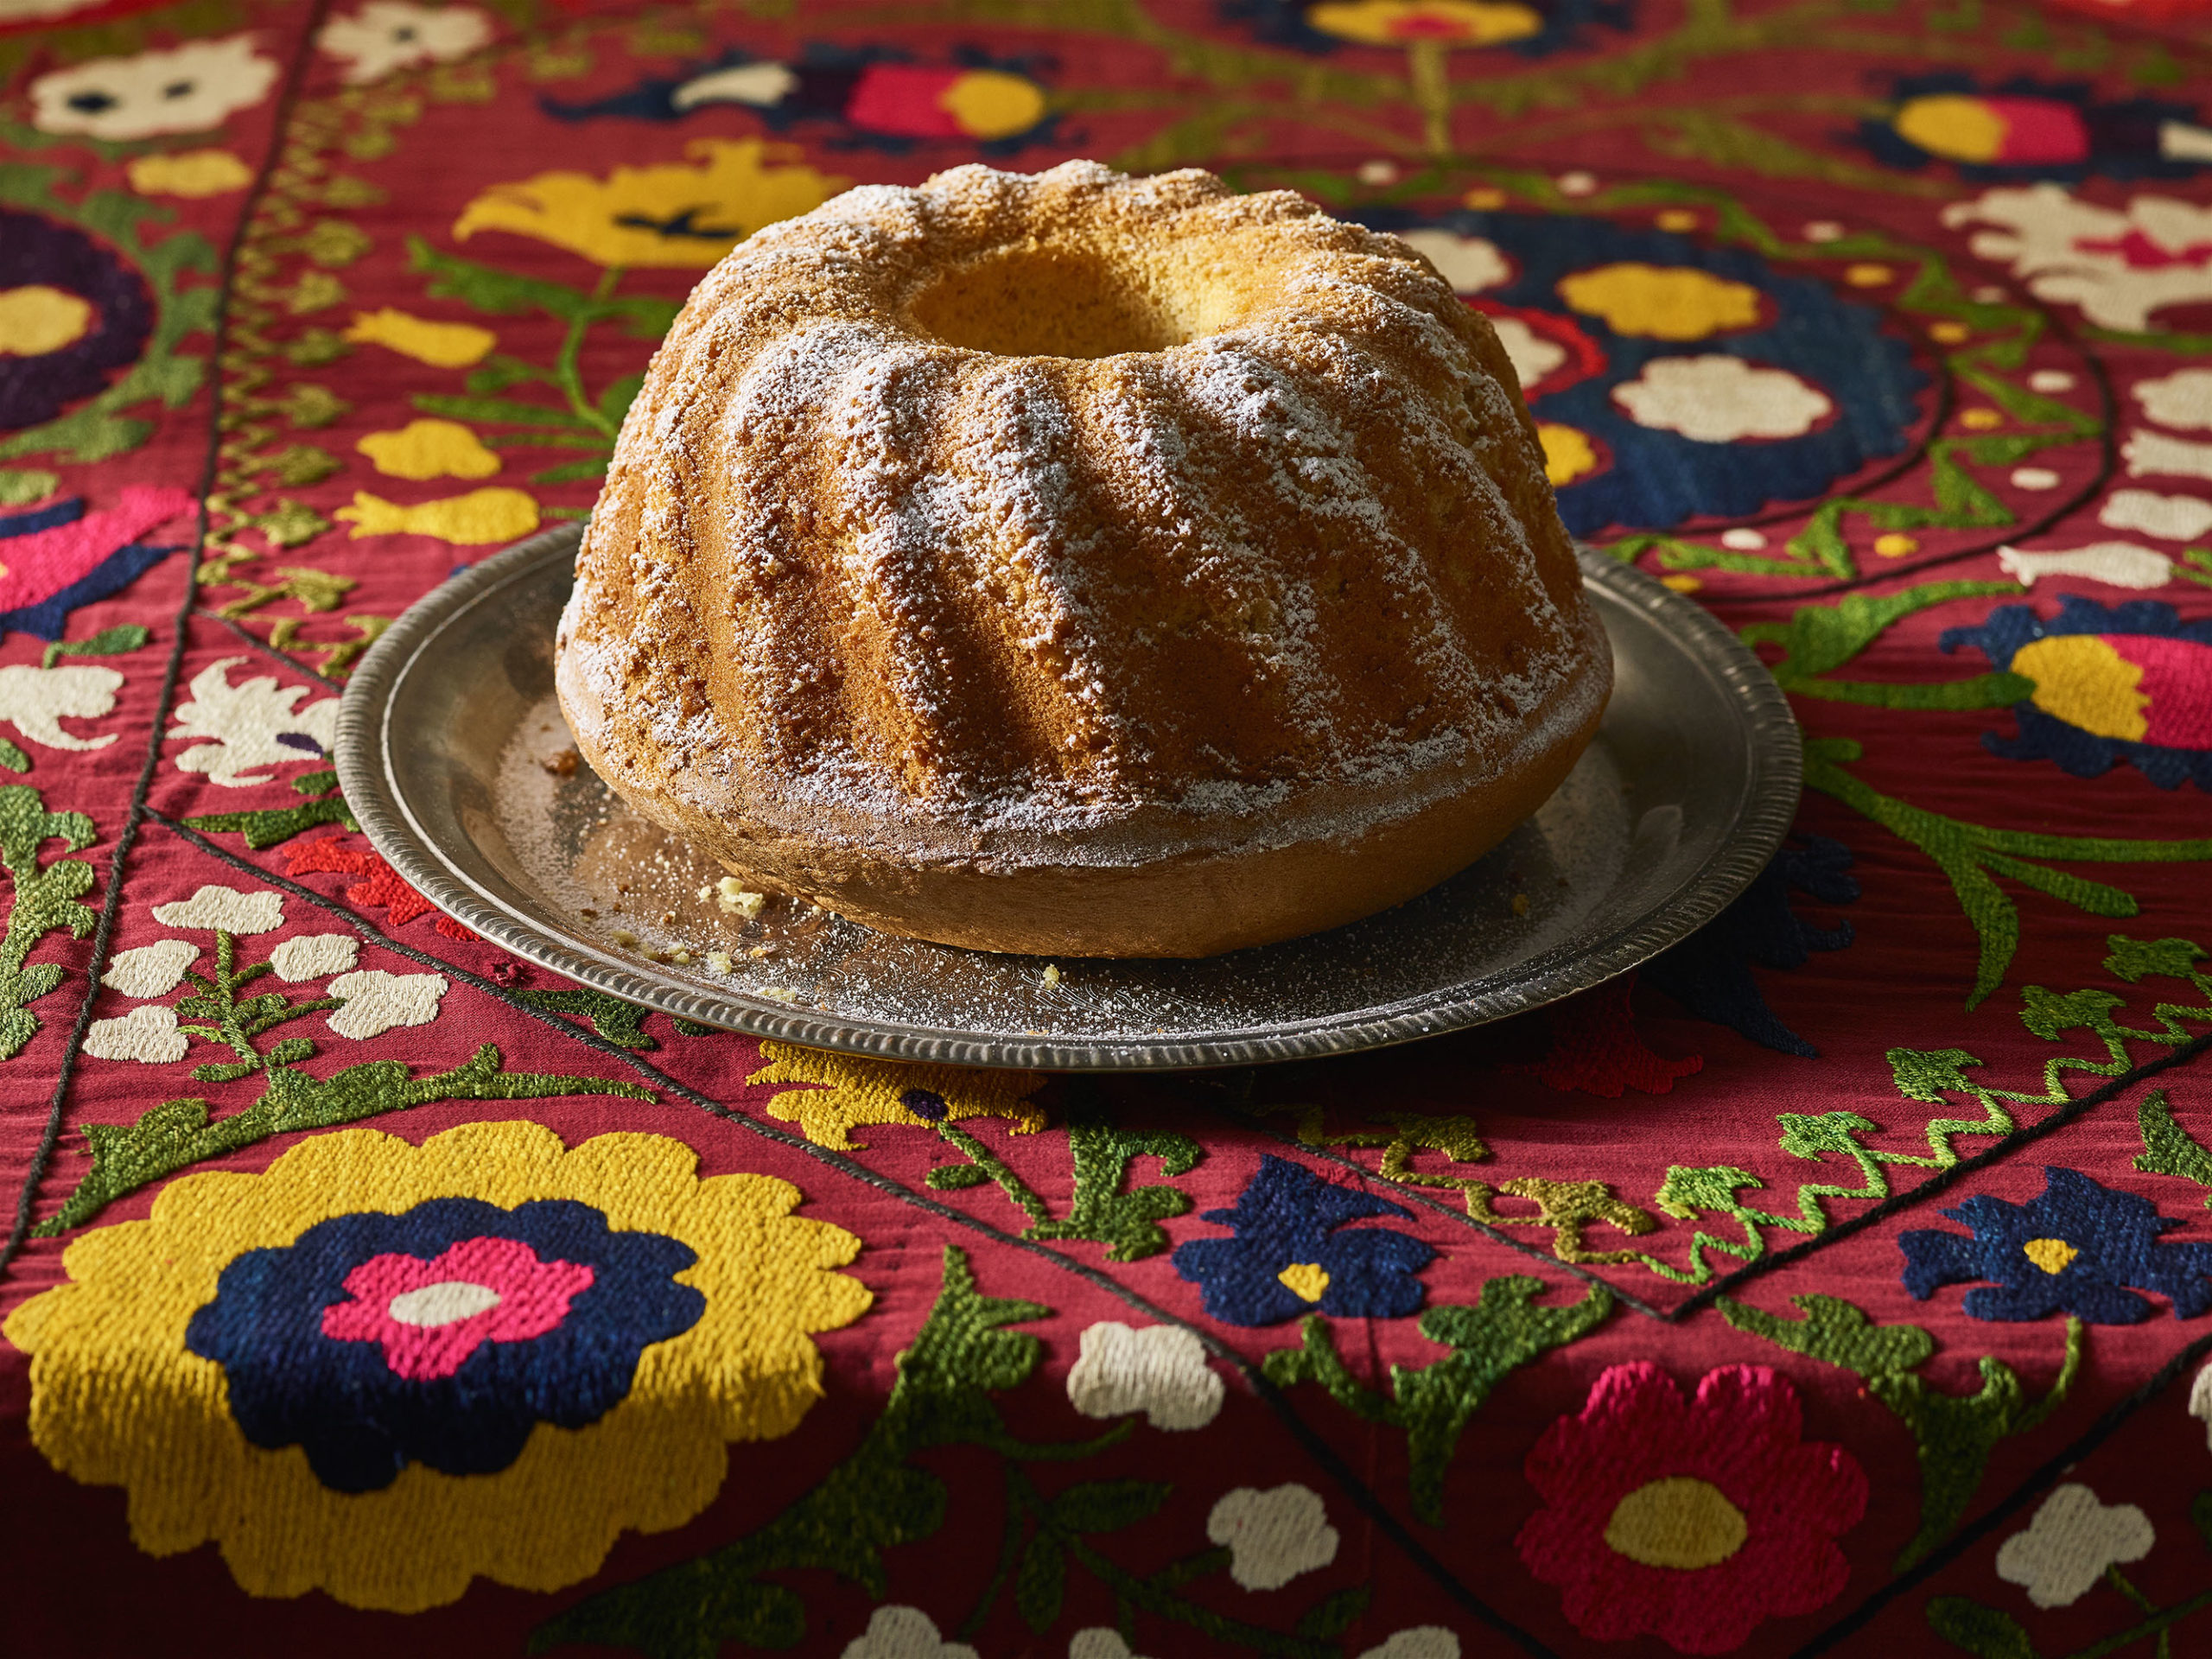 Orange juice bundt cake on a silver platter atop a colorful red tablecloth